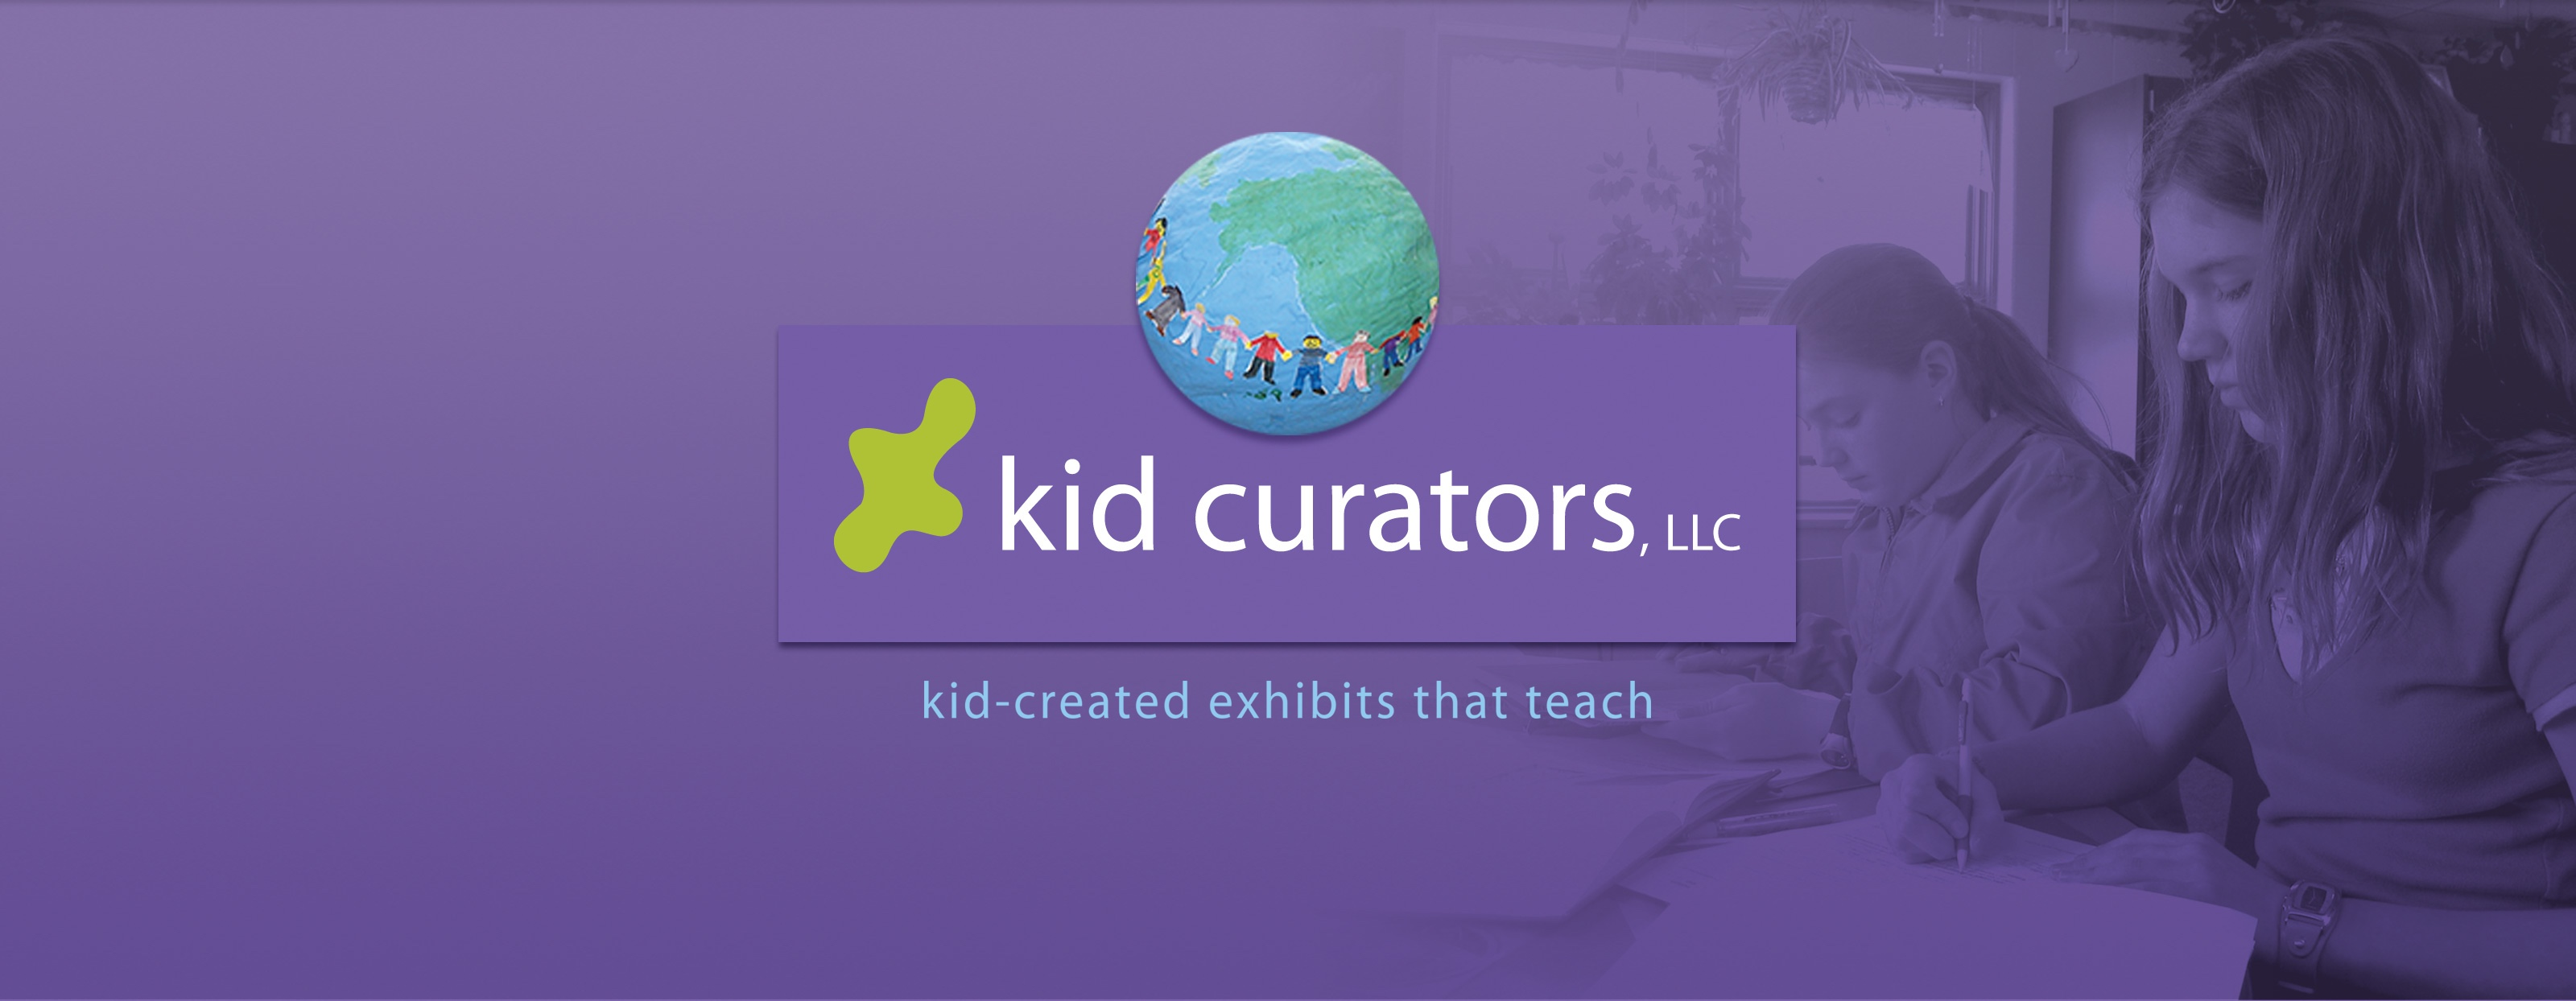 kid-curators-home-slide1